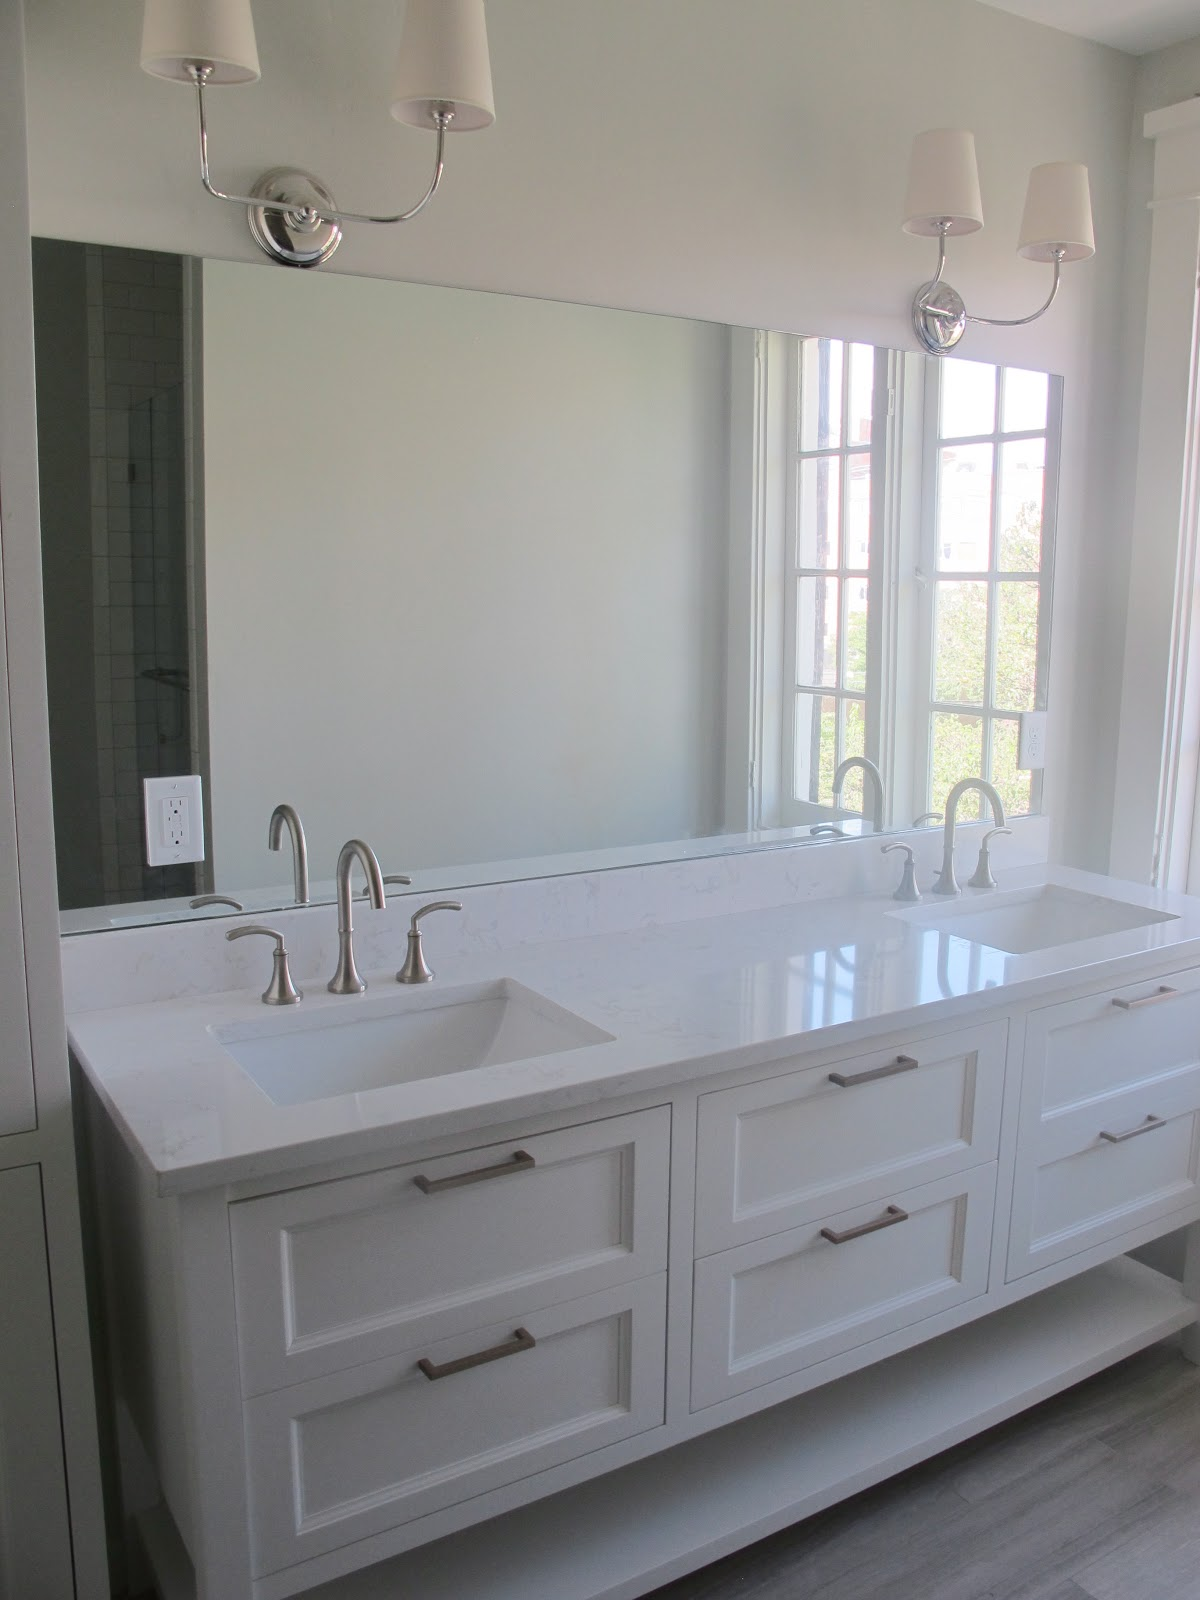 Alluring 10 white quartz bathroom floor tiles inspiration design white quartz bathroom floor tiles white gold before afters c street project dailygadgetfo Image collections